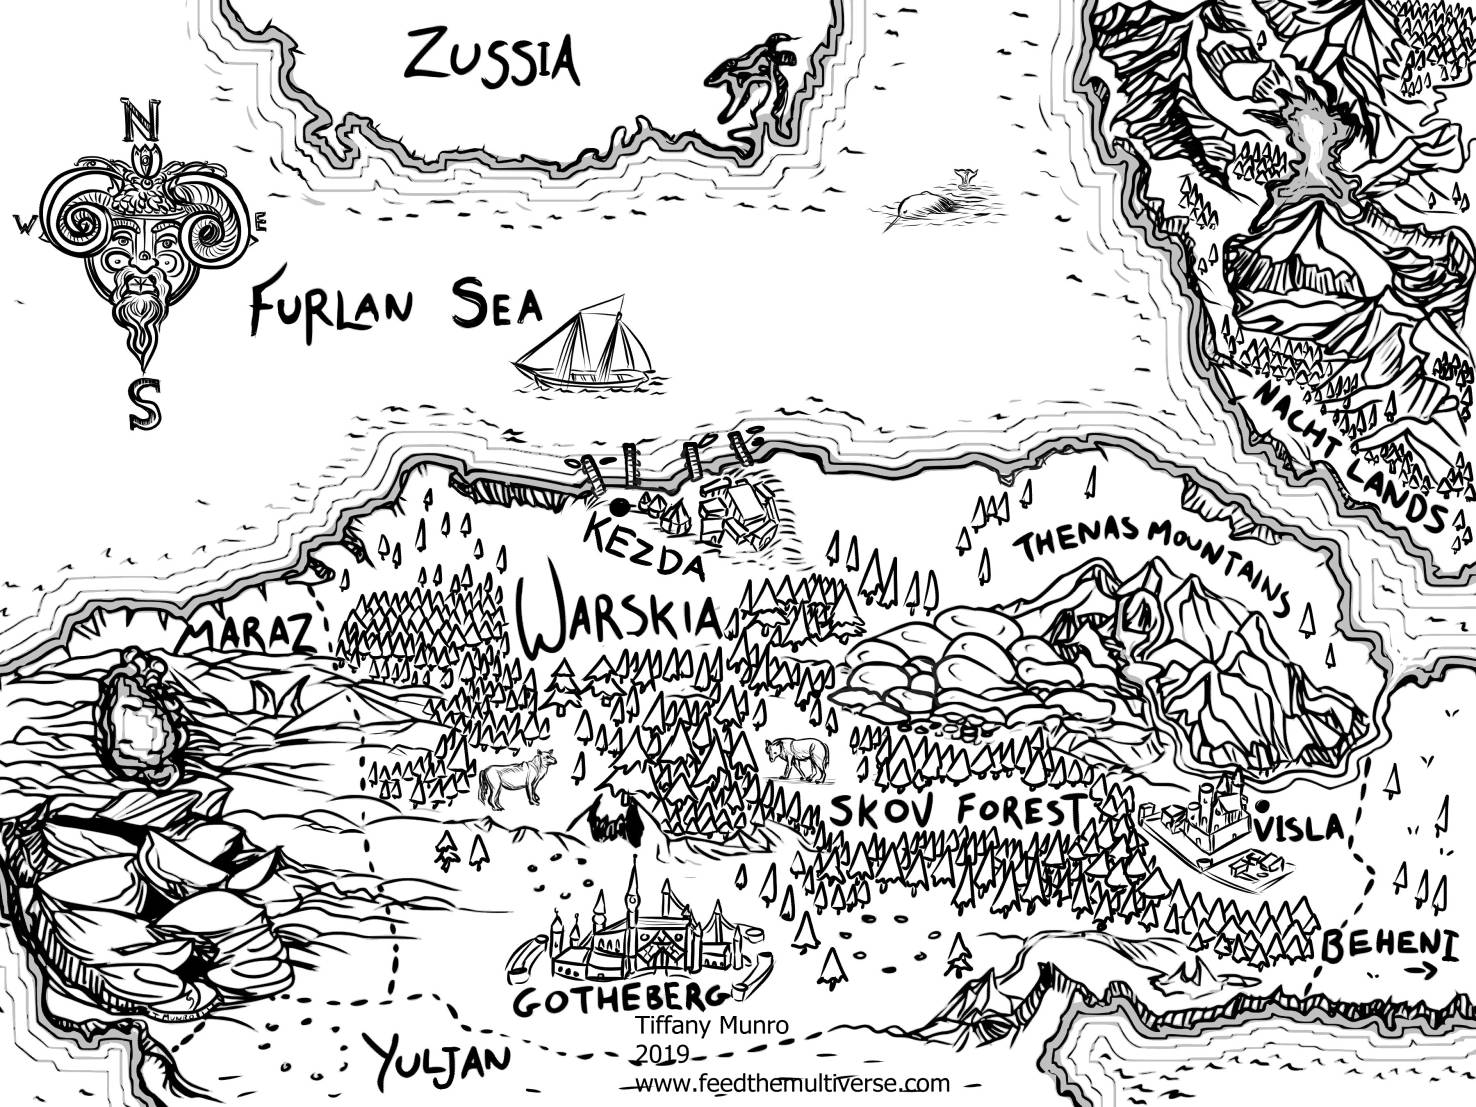 black and white fantasy map novel tolkien stylel lineart ink hand lettered caligraphy